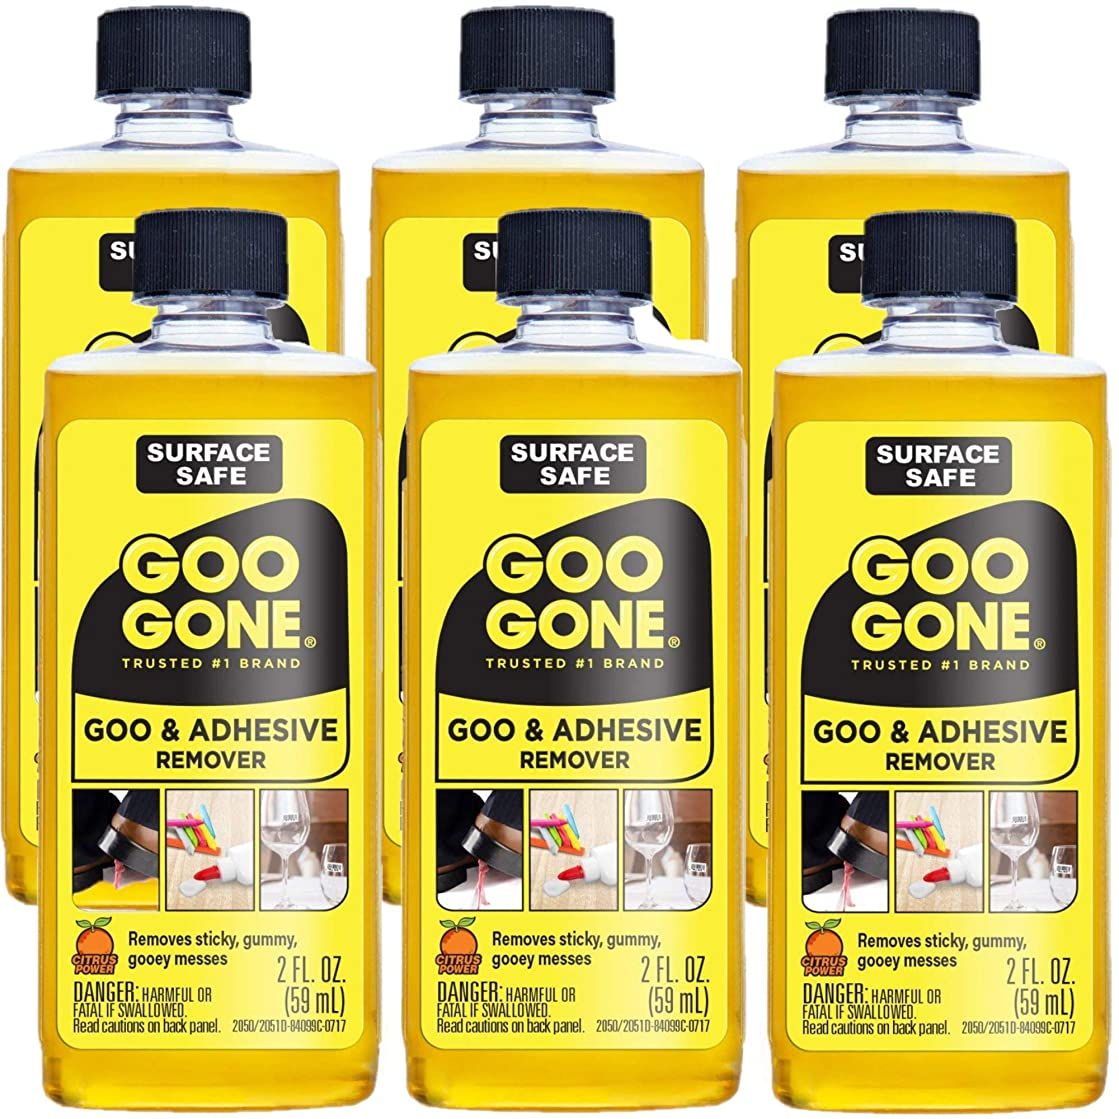 Goo Gone Original - 2 Ounce - Surface Safe Adhesive Remover Safely Removes Stickers Labels Decals Residue Tape Chewing Gum Grease Tar - Pack of 6